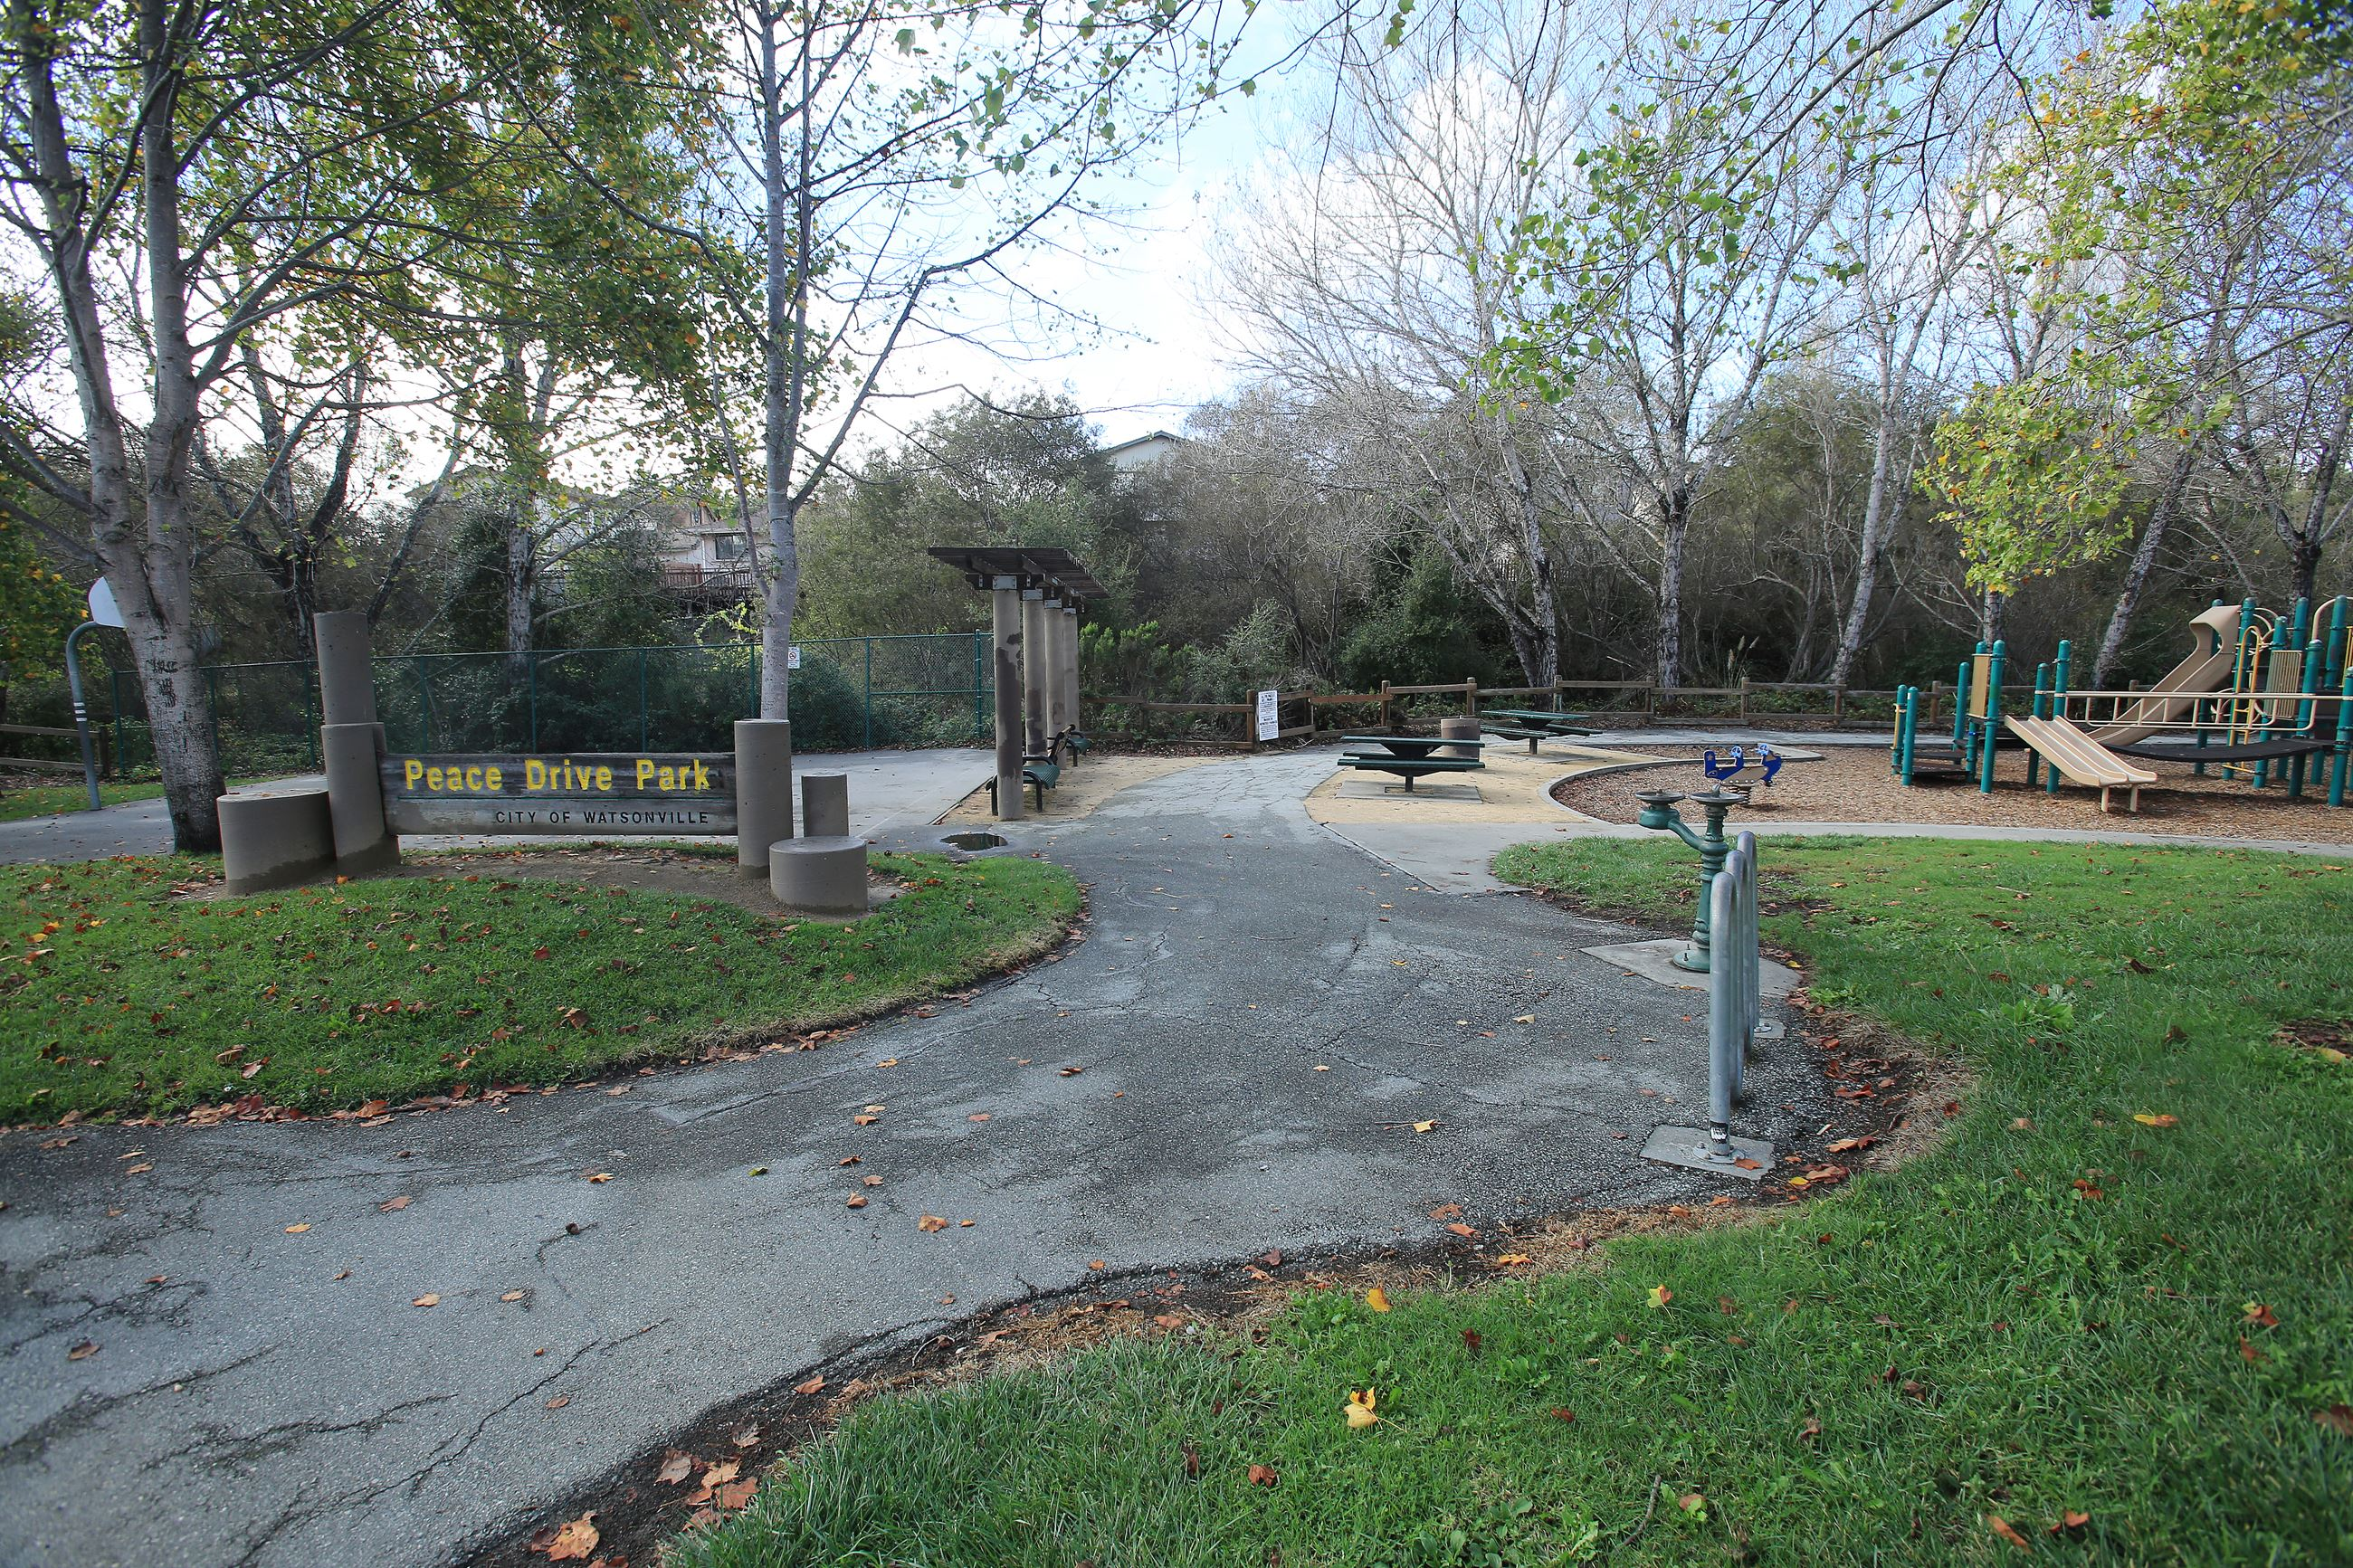 Peace Drive park sign and path